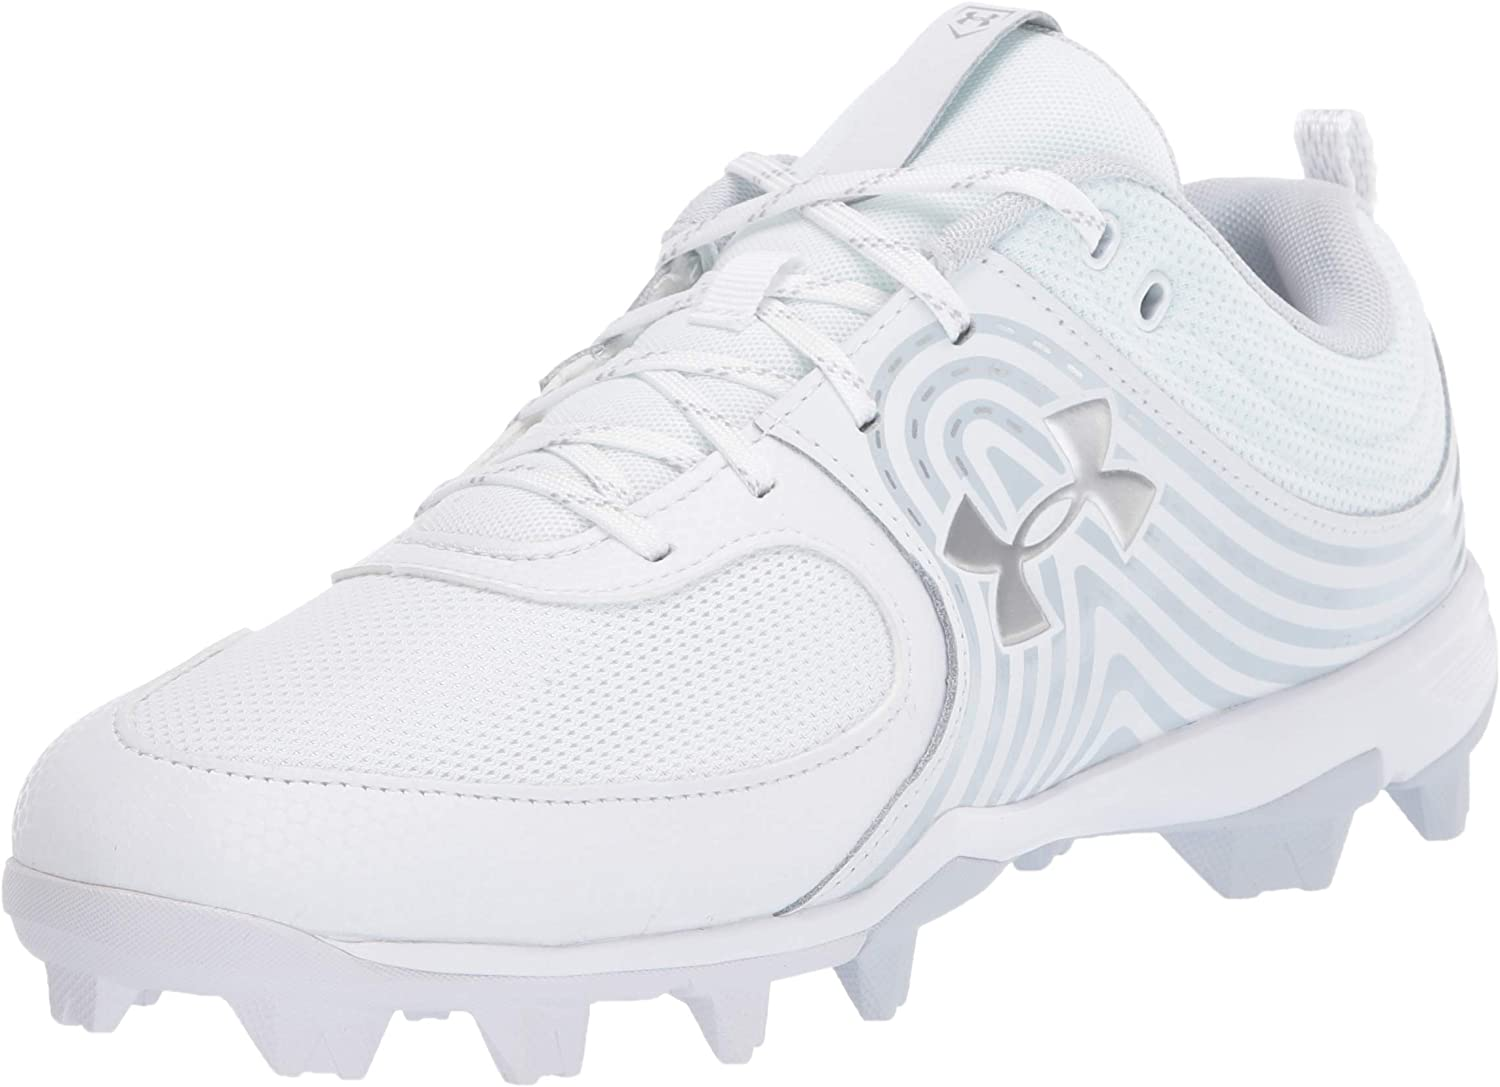 Under Armour Women's Glyde Softball Brand new Shoe Be super welcome Rm